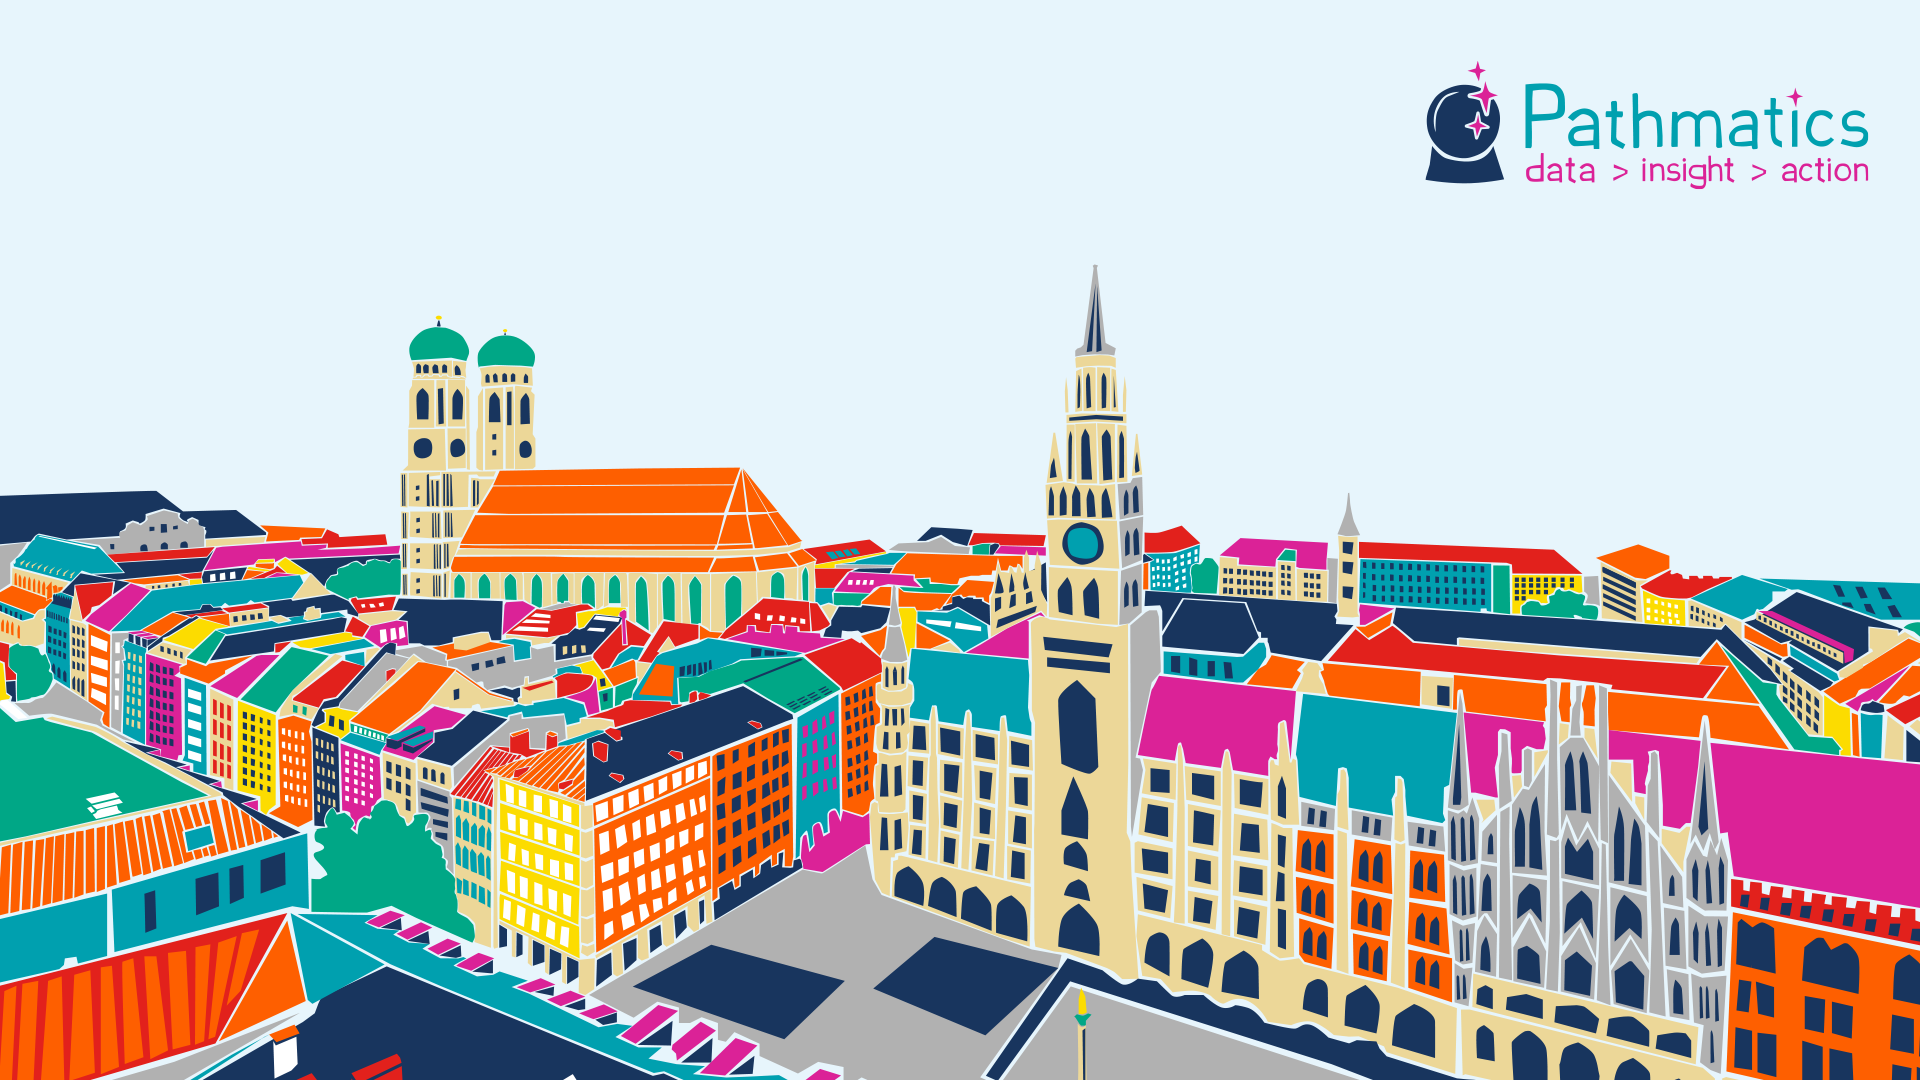 Pathmatics Zoom Backgrounds Bring Your Favorite City to You